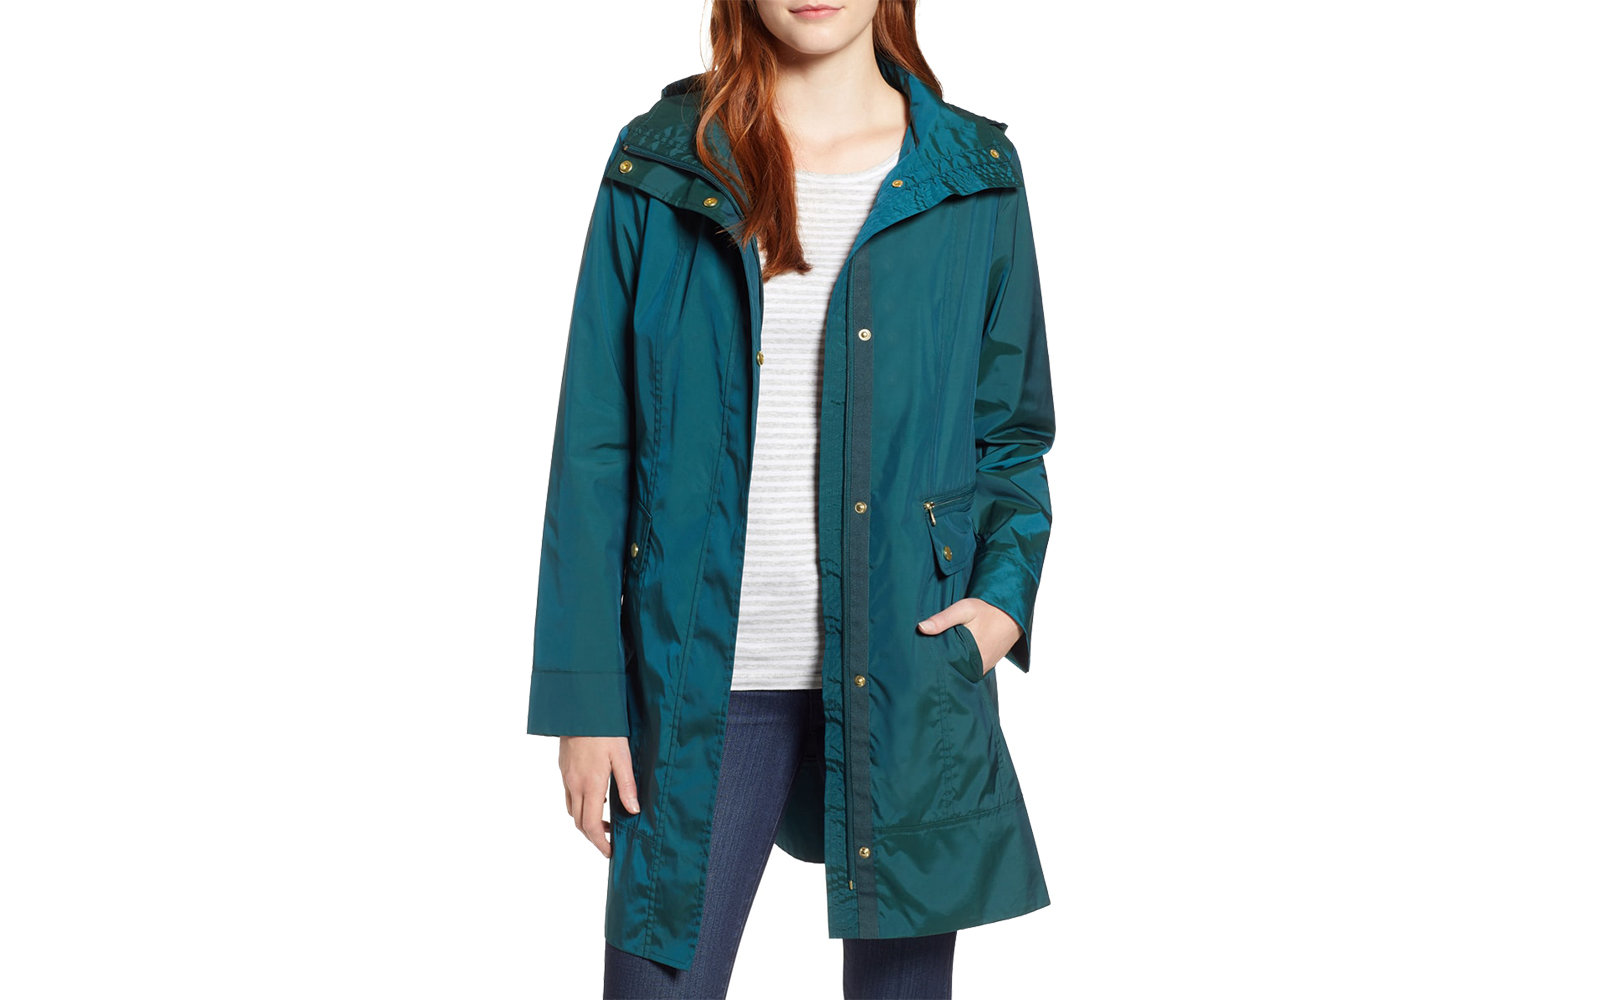 c4452393e 14 Best Women's Rain Jackets, According to Customers | Travel + Leisure